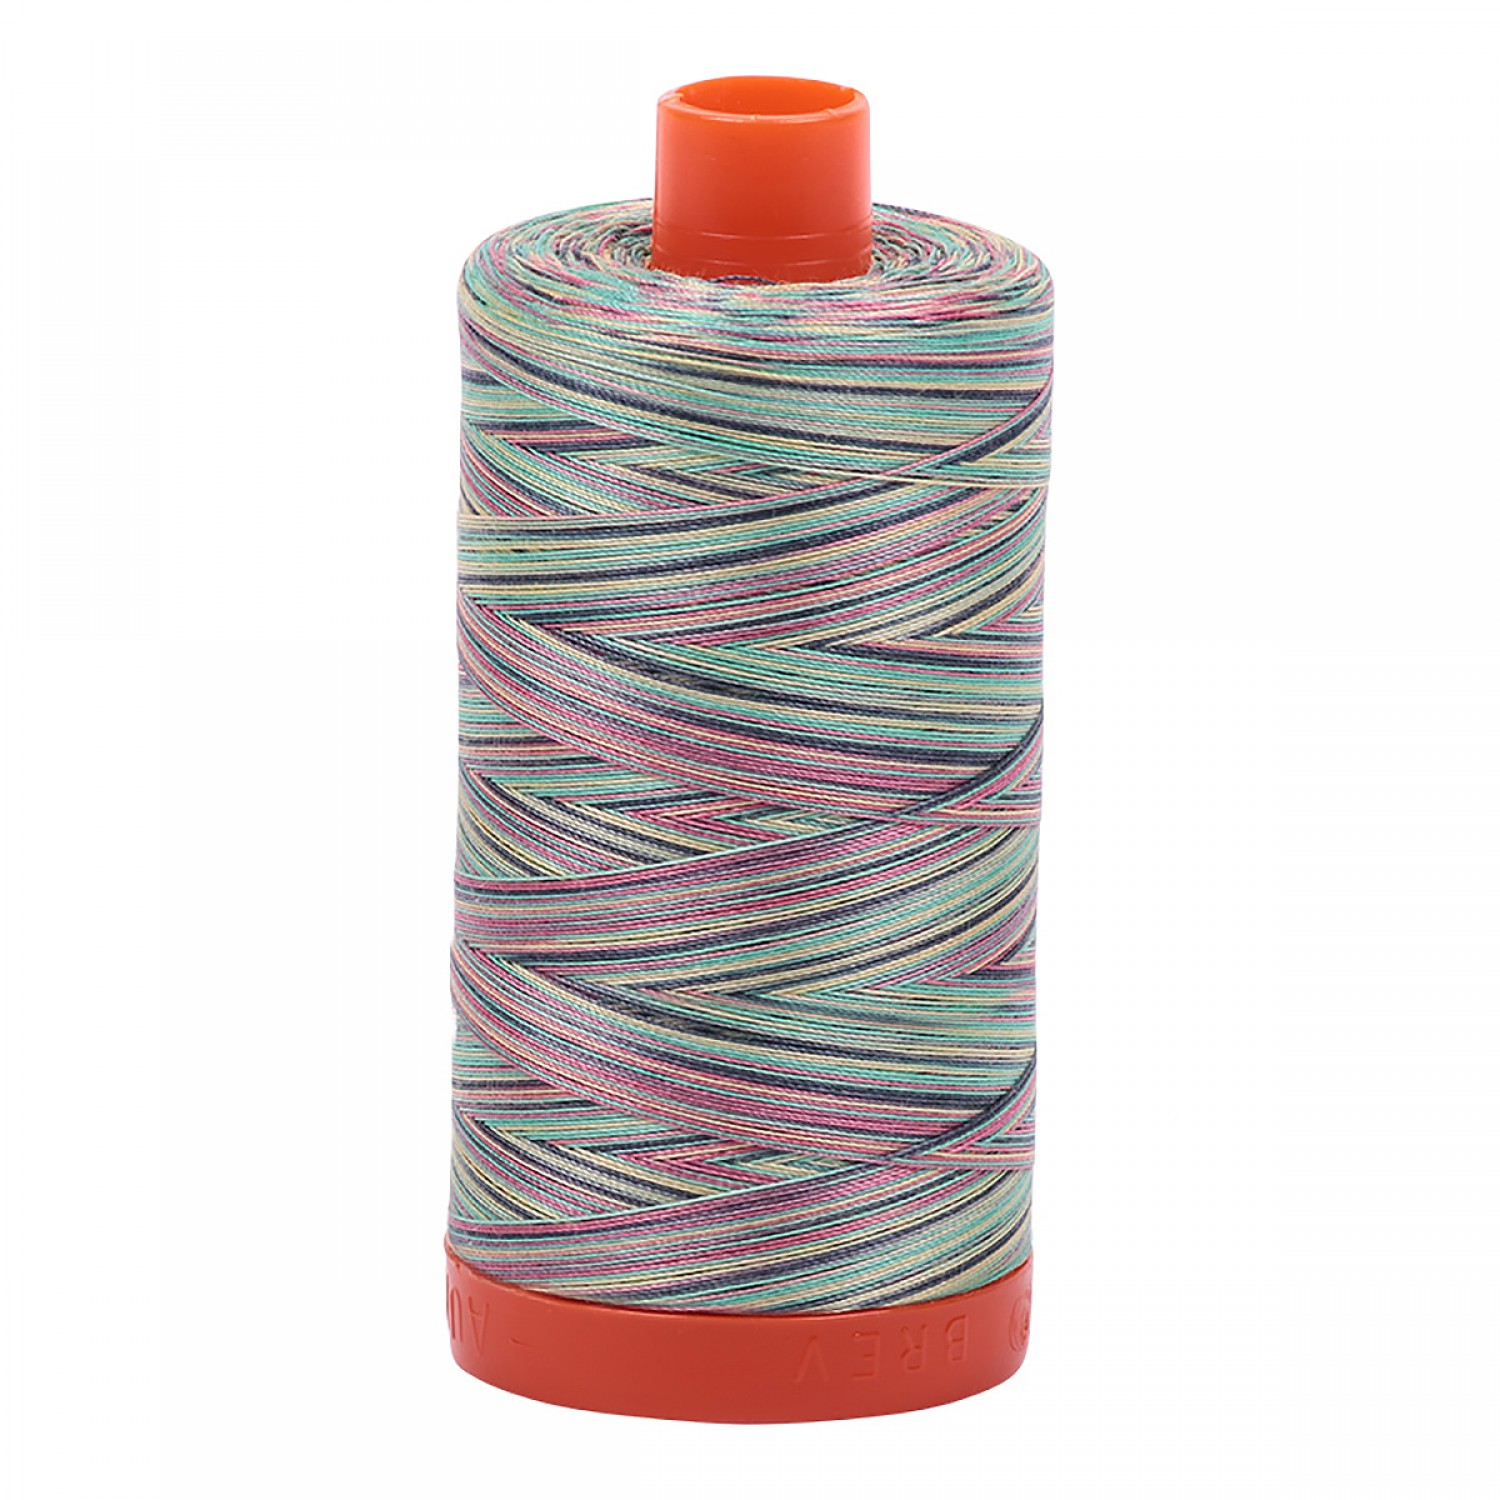 Aurifil Mako 50 wt Cotton Thread - 1422 yds - Marrakesh Variegated (3817)